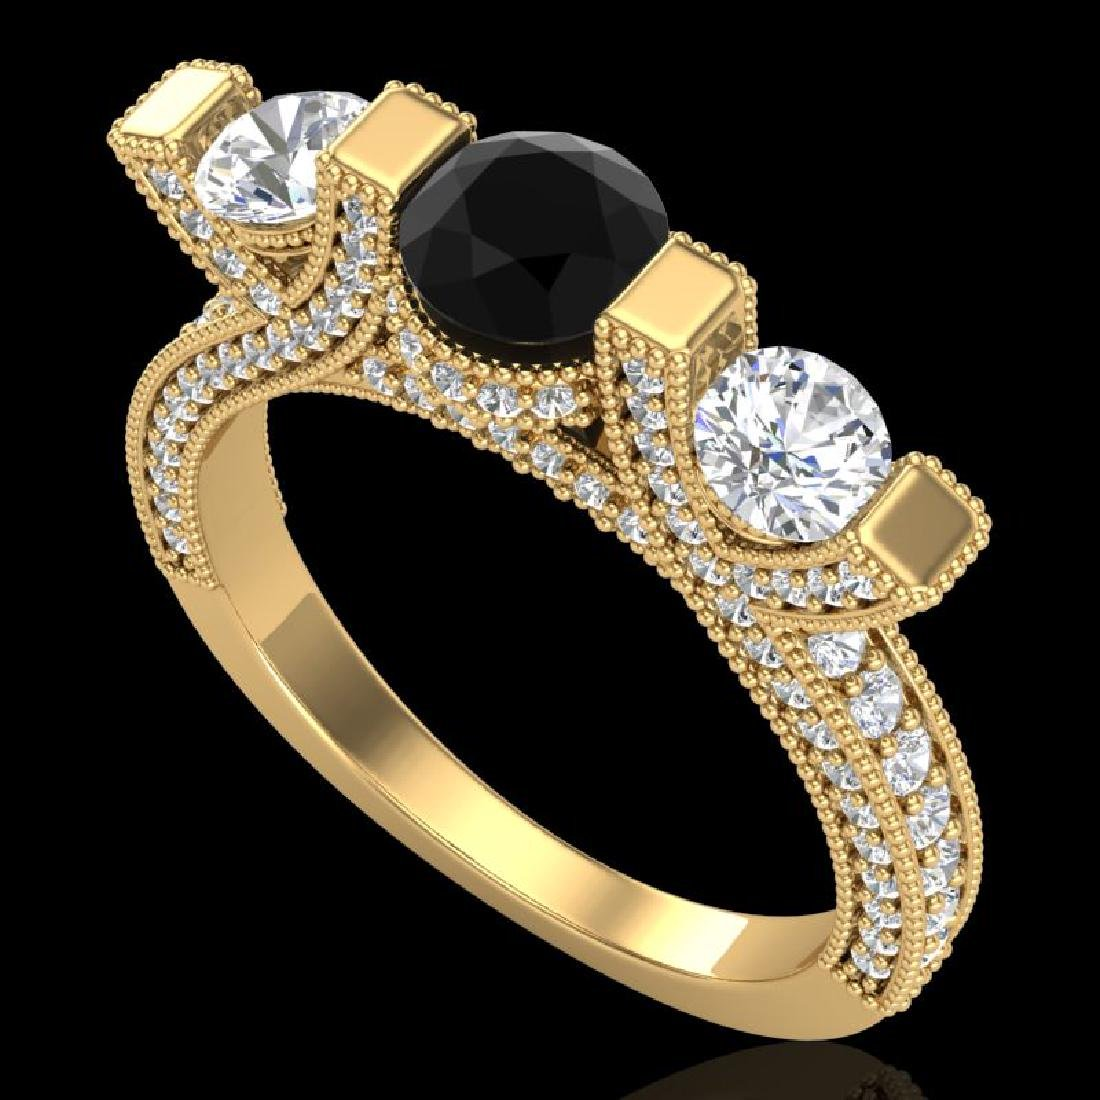 2.3 CTW Fancy Black Diamond Solitaire Micro Pave 3